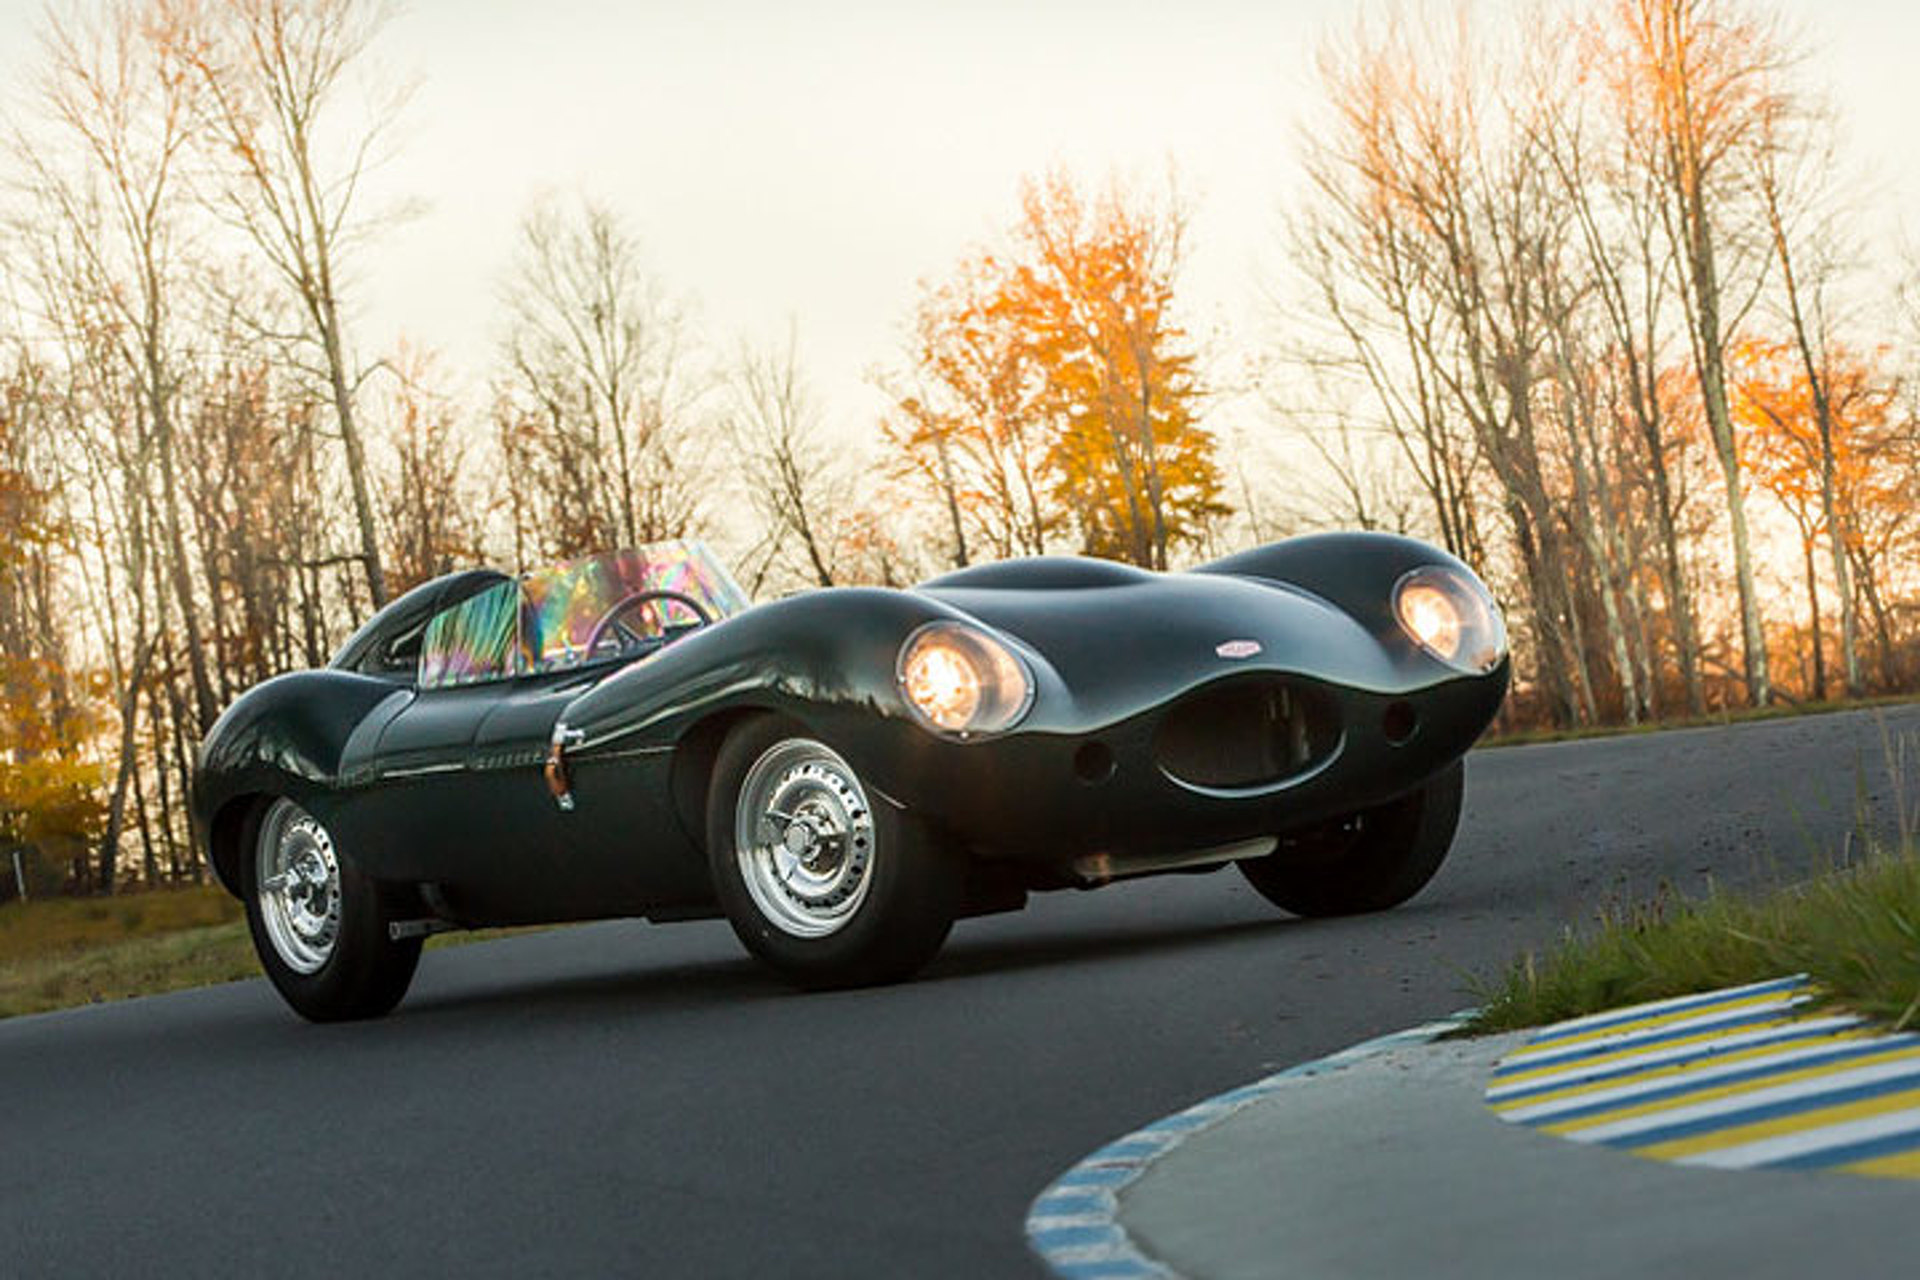 This Tempero Jaguar is a D-Type, Minus the Million Dollar Price